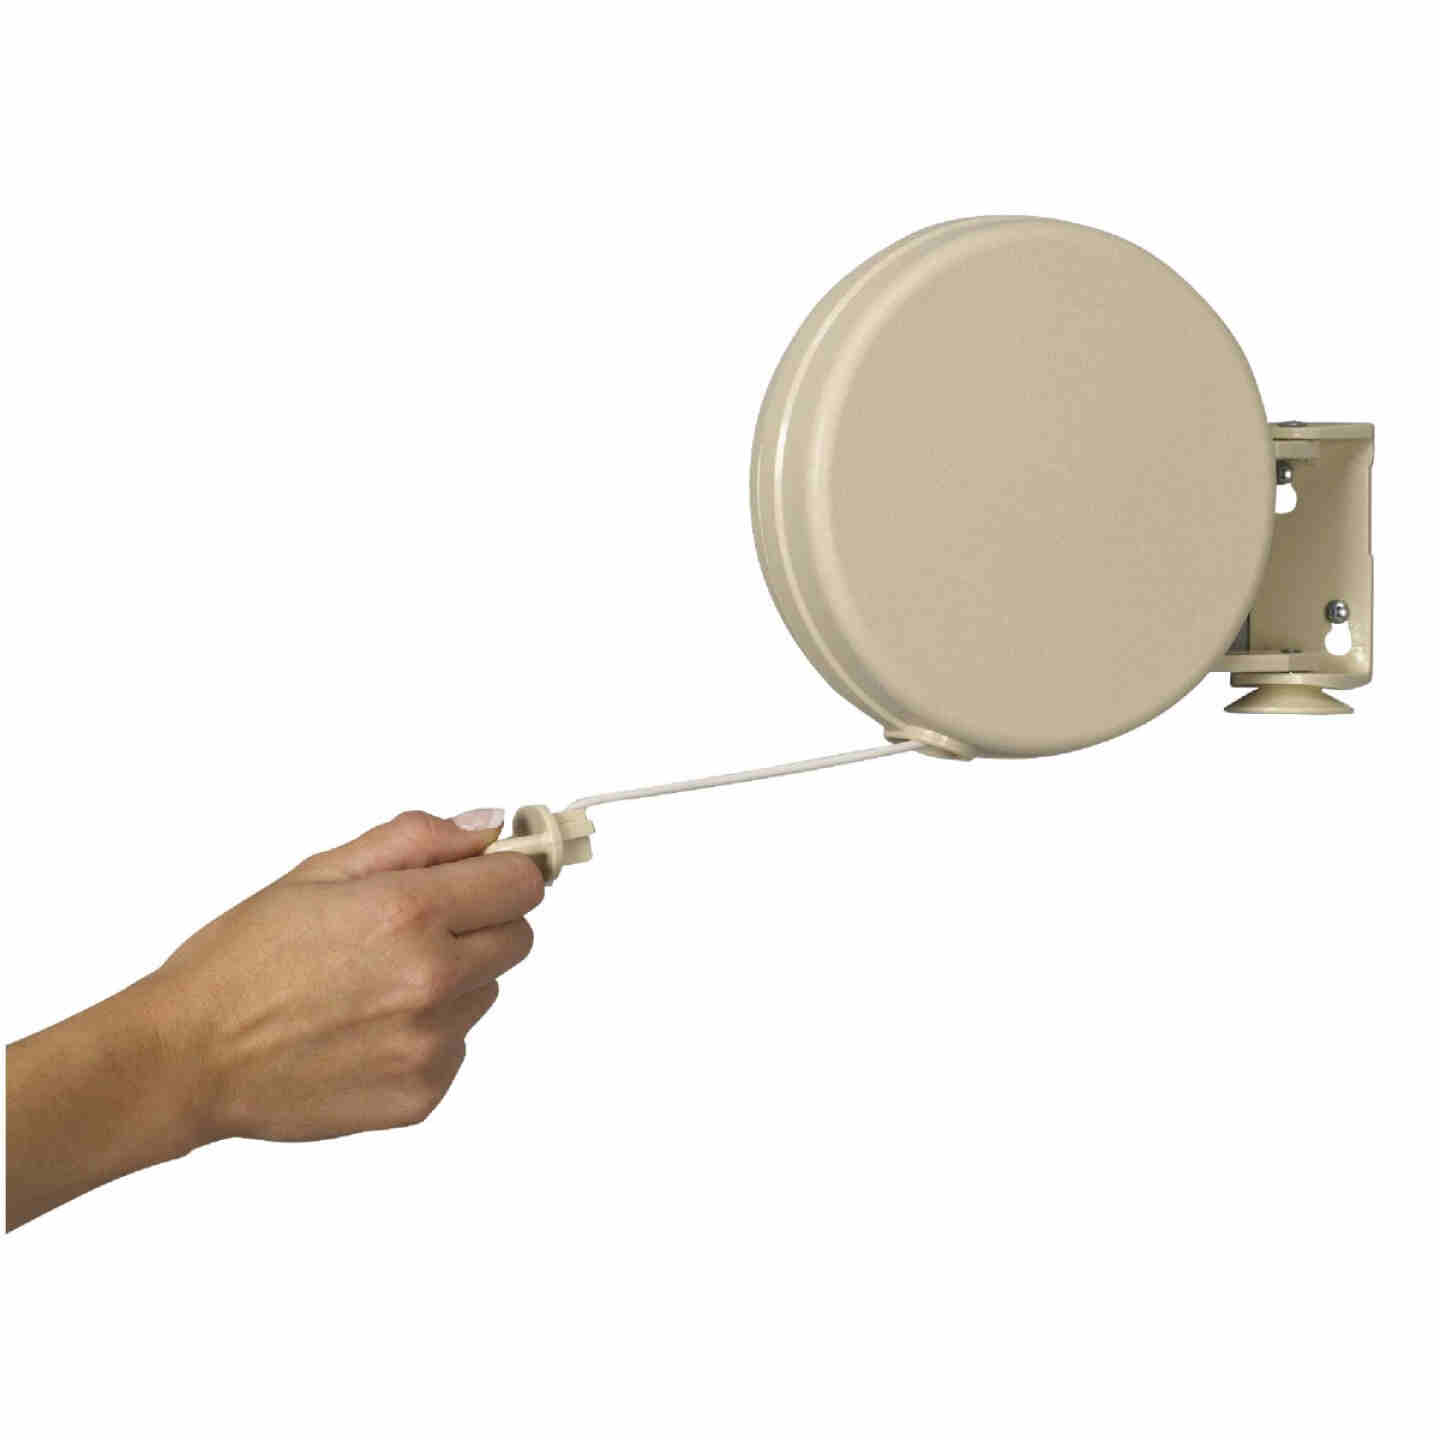 Household Essentials Sunline 40 Ft. 75 to 100 Lb. Capacity Plastic Retractable Clothesline Image 1